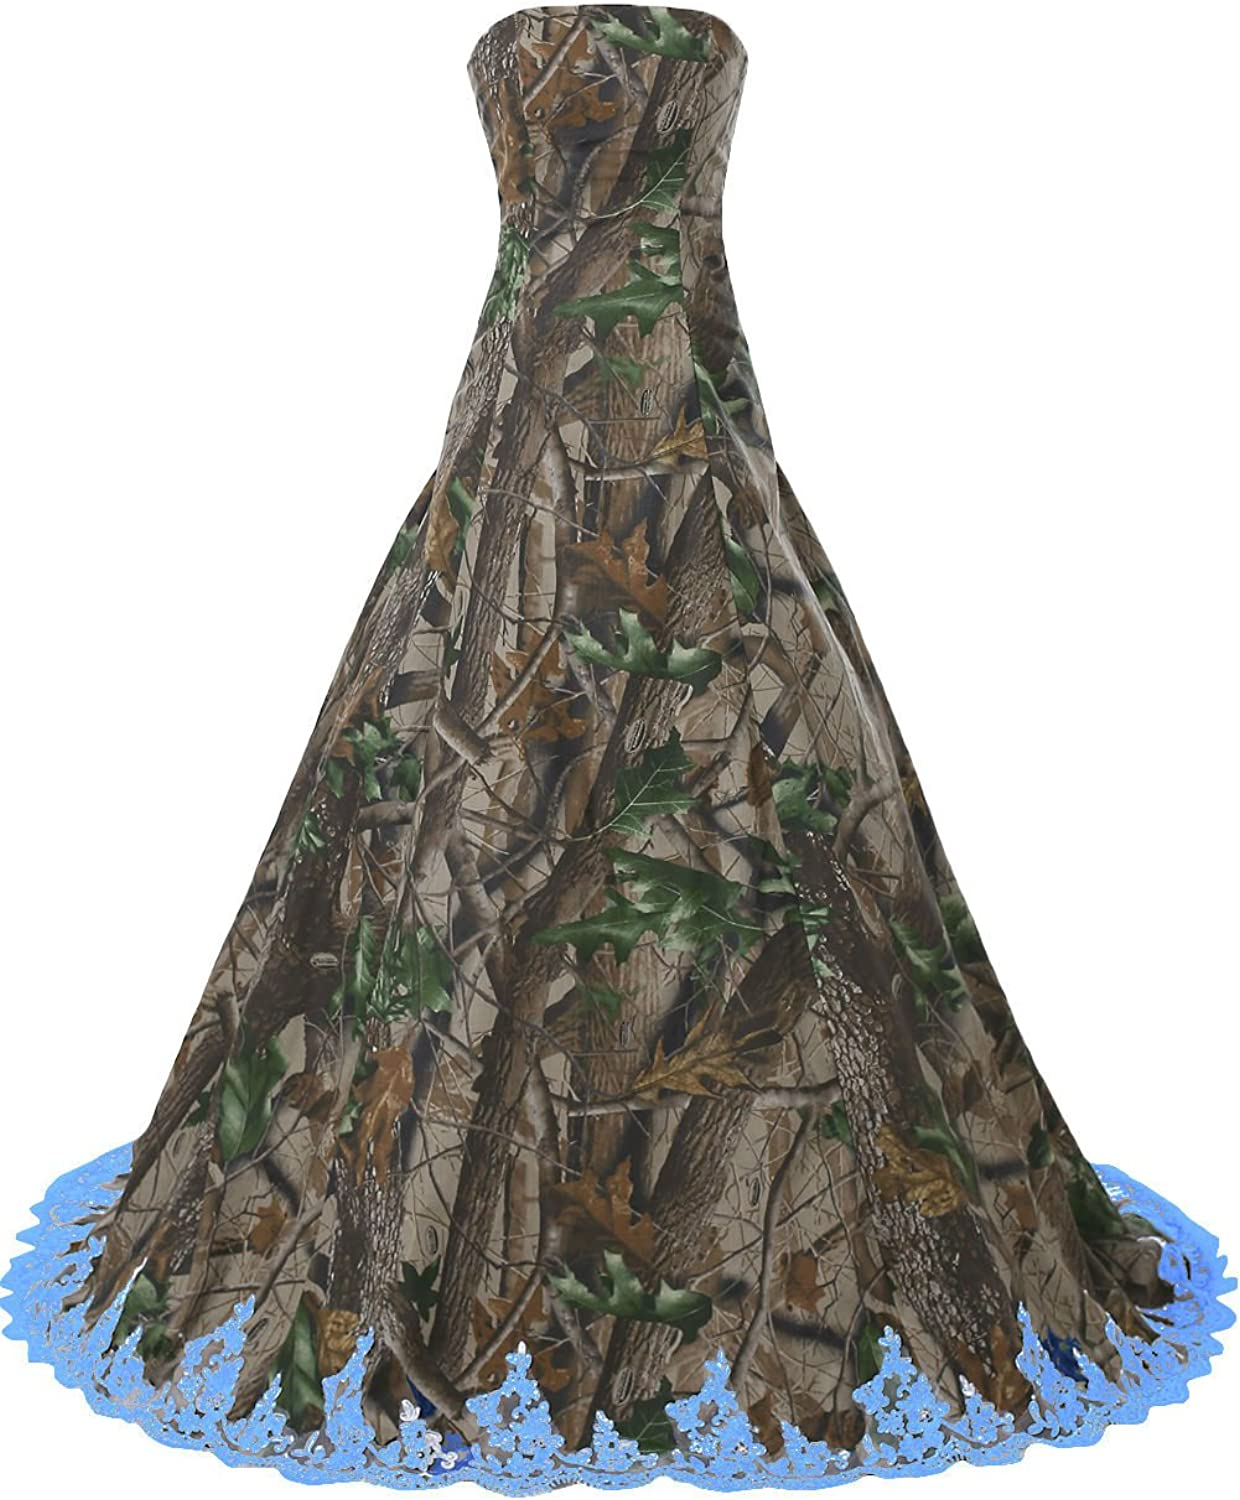 DINGZAN Camo and Lace Wedding Dresses Bridal Reception Prom Ball Gowns